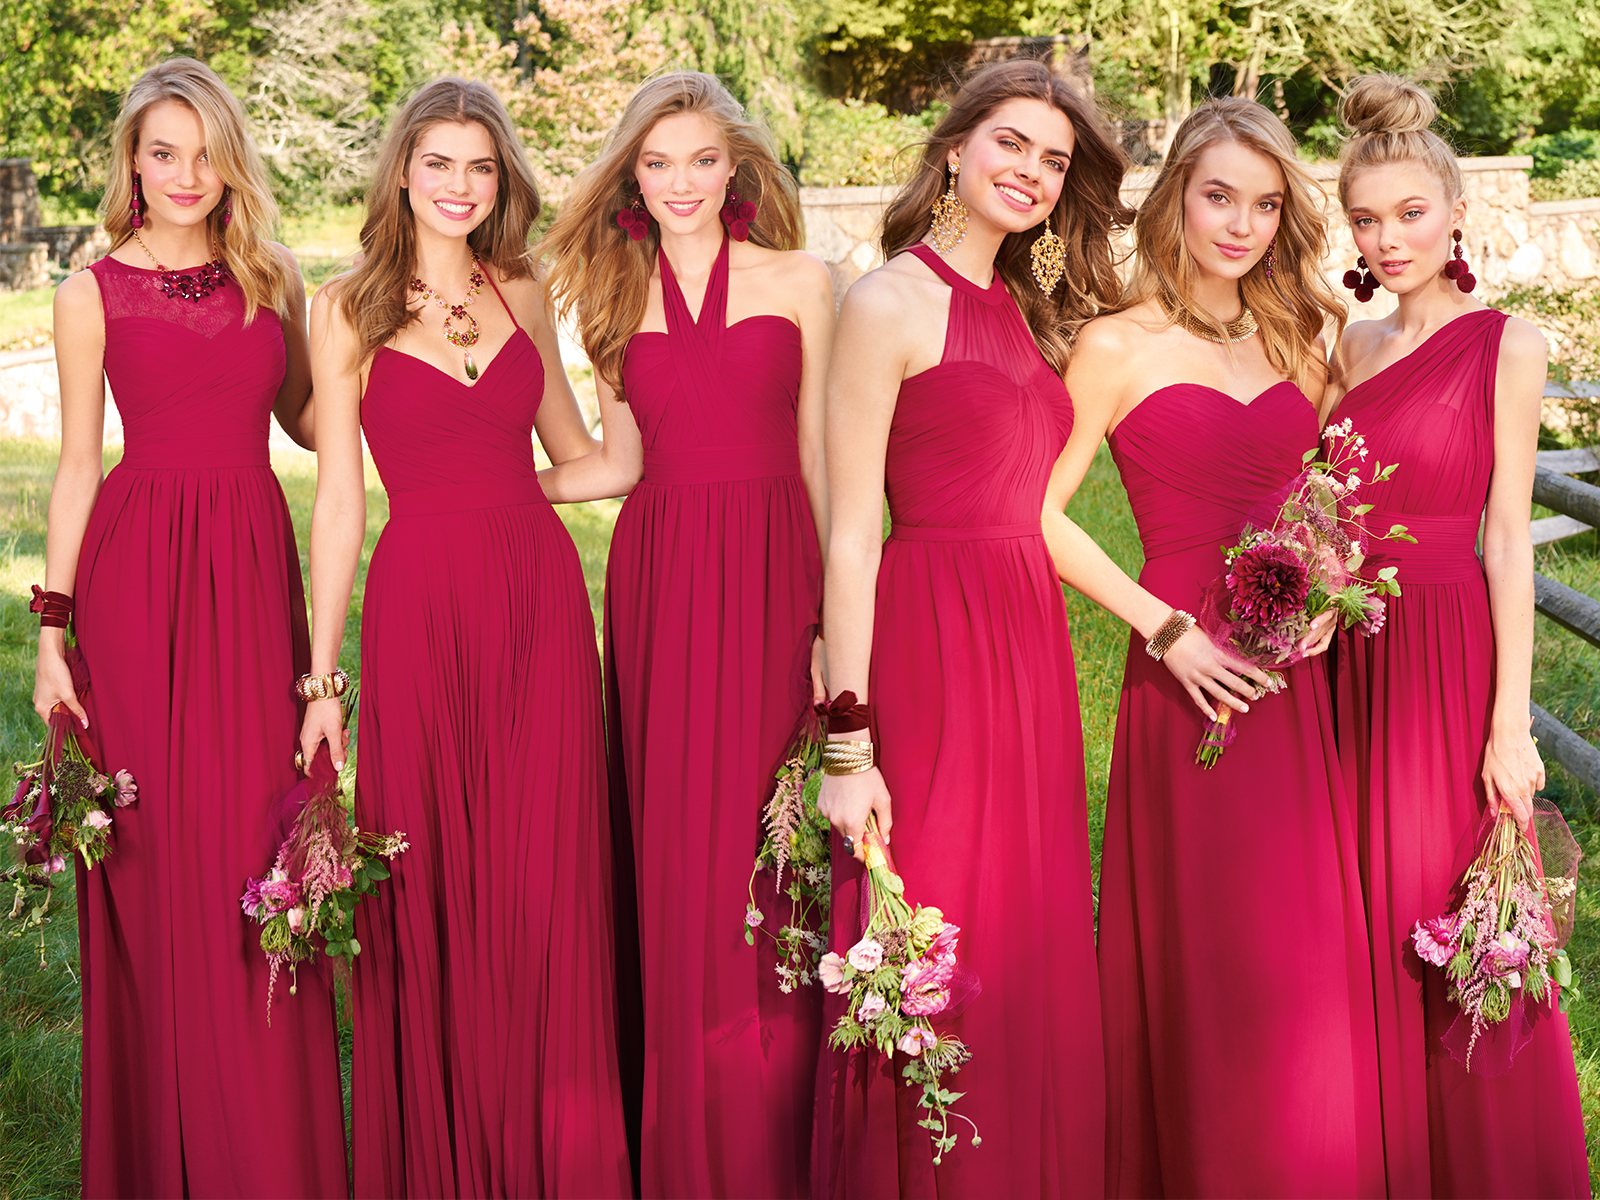 1e2da8ff73f3 Our Top 4 Fall Bridesmaid Dress Colors | Camille La Vie